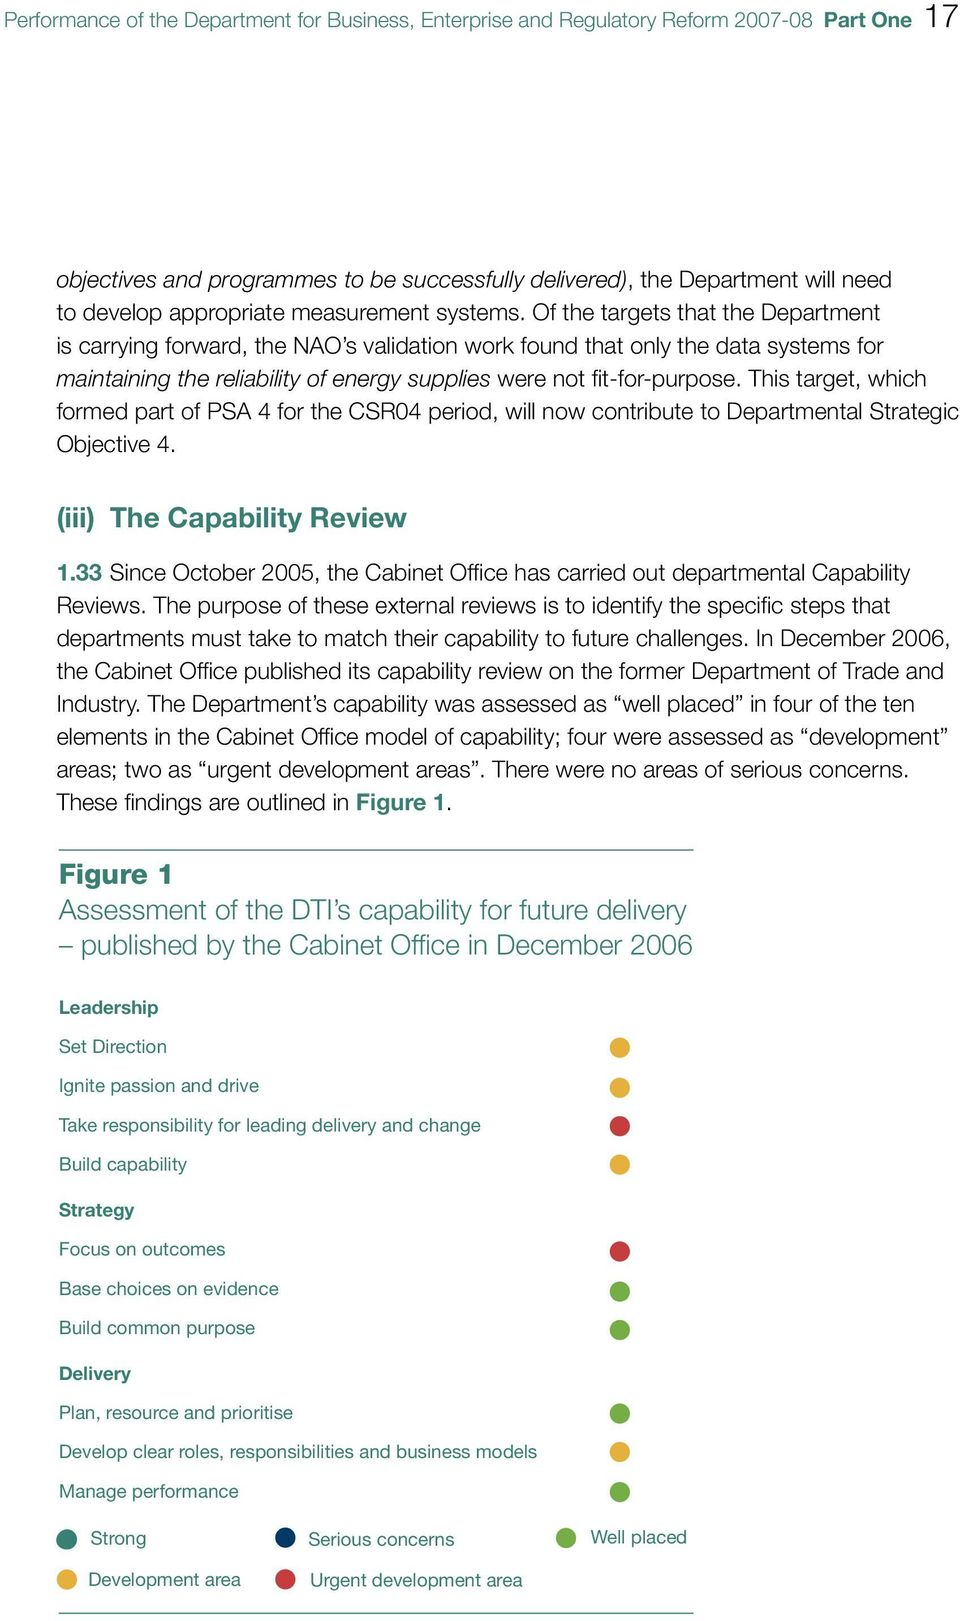 Of the targets that the Department is carrying forward, the NAO s vaidation work found that ony the data systems for maintaining the reiabiity of energy suppies were not fit-for-purpose.